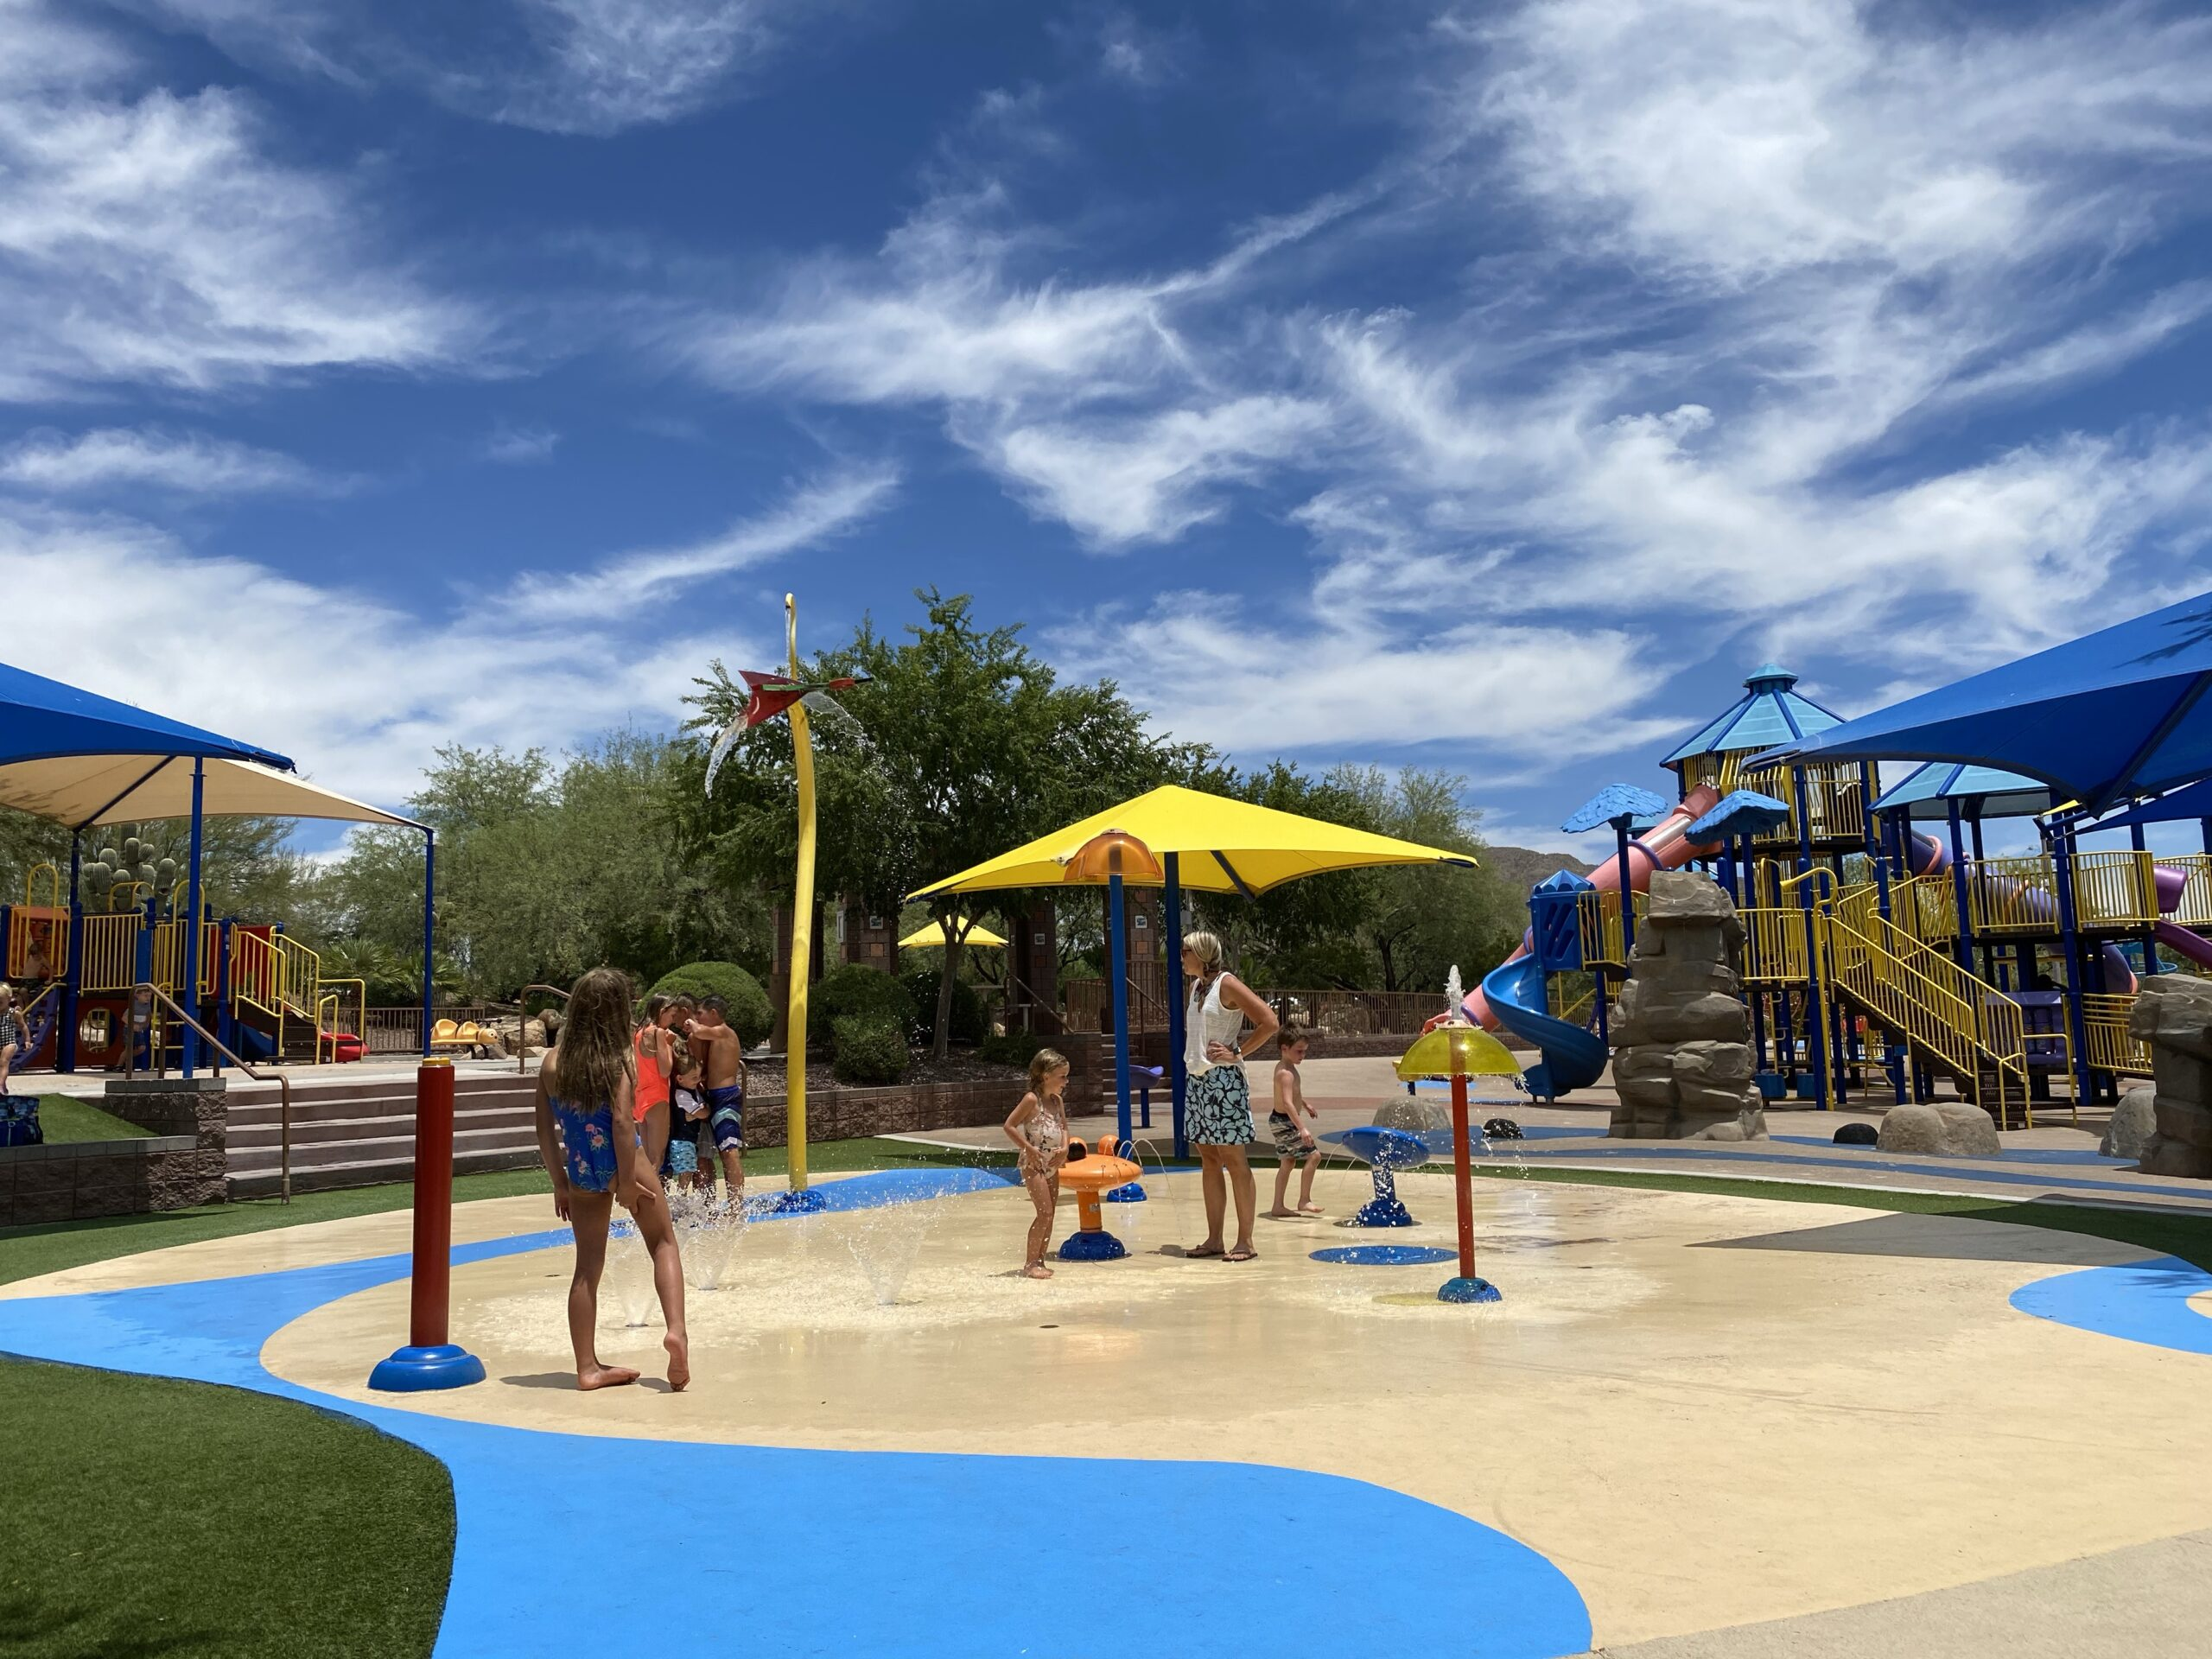 Best Splash Pads In Anthem And Carefree Phoenix With Kids